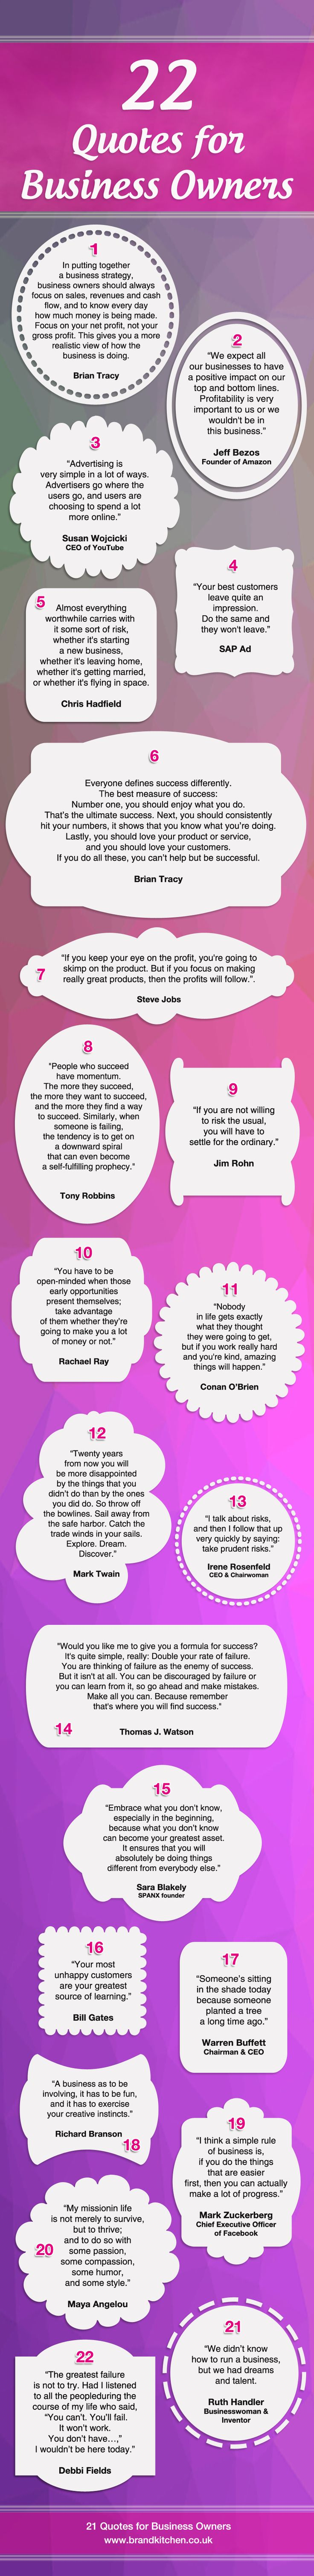 22 Quotes For Business Owners #infographic #quotes #business